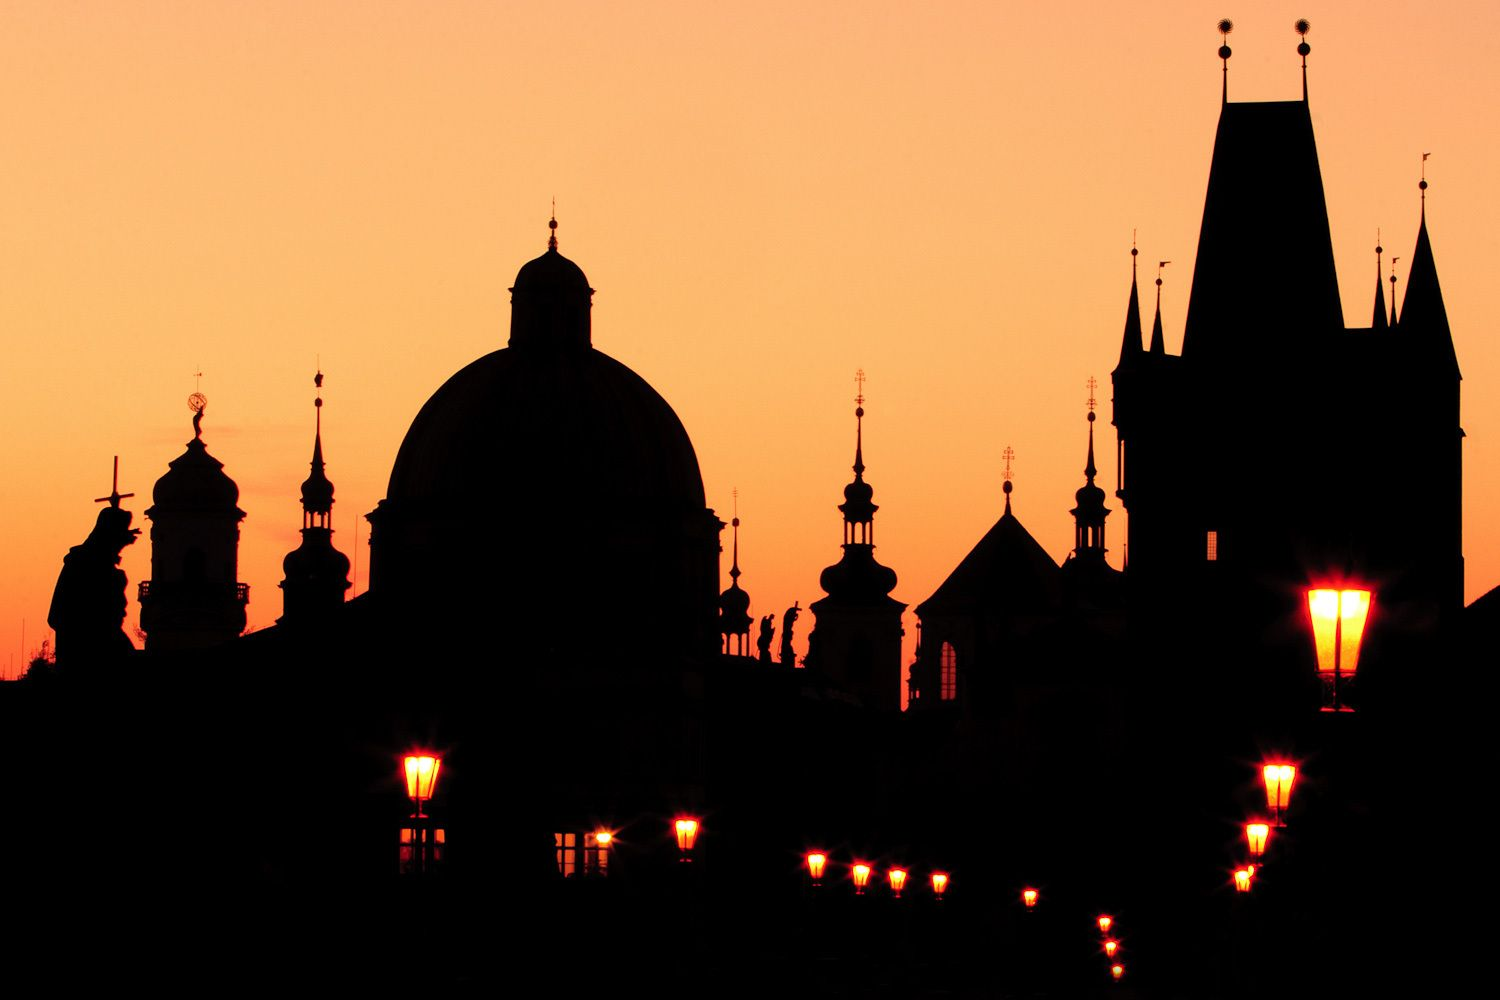 Silhouette of buildings from Charles Bridge at dawn, Prague, Czech Republic.